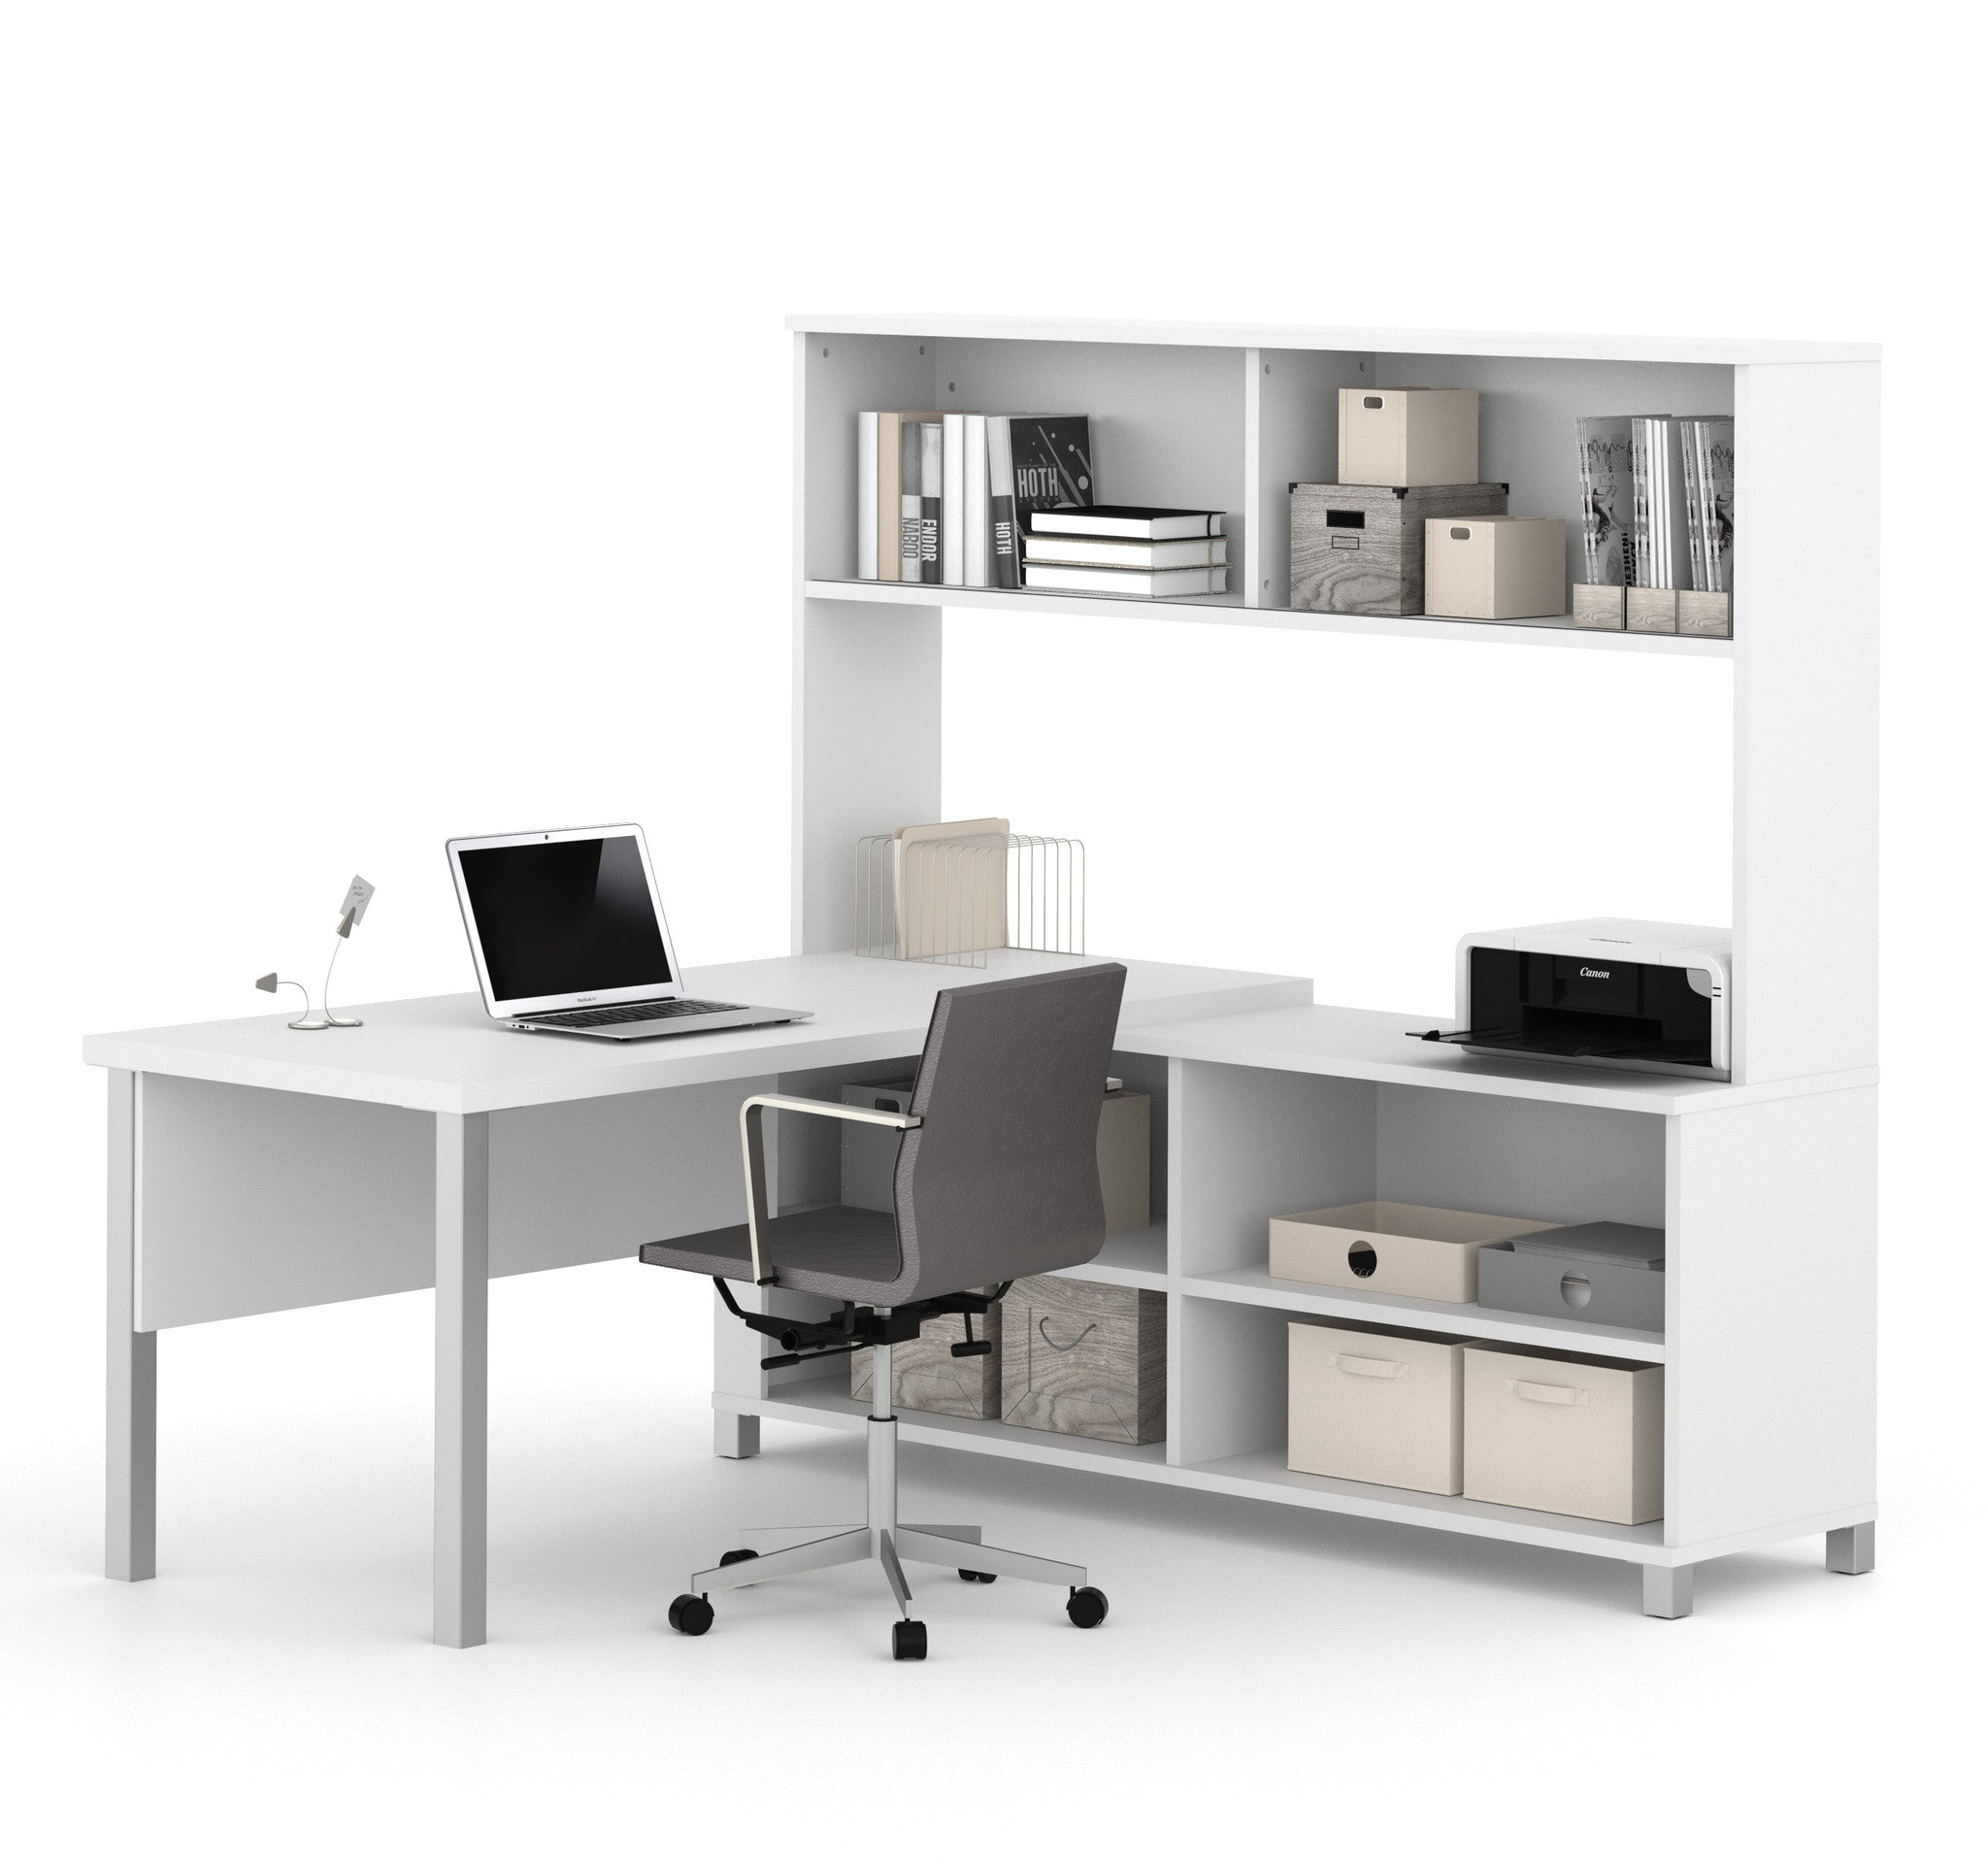 Superb img of Premium Modern L shaped Desk with Hutch in White – ComputerDesk.com with #70675B color and 2048x1920 pixels